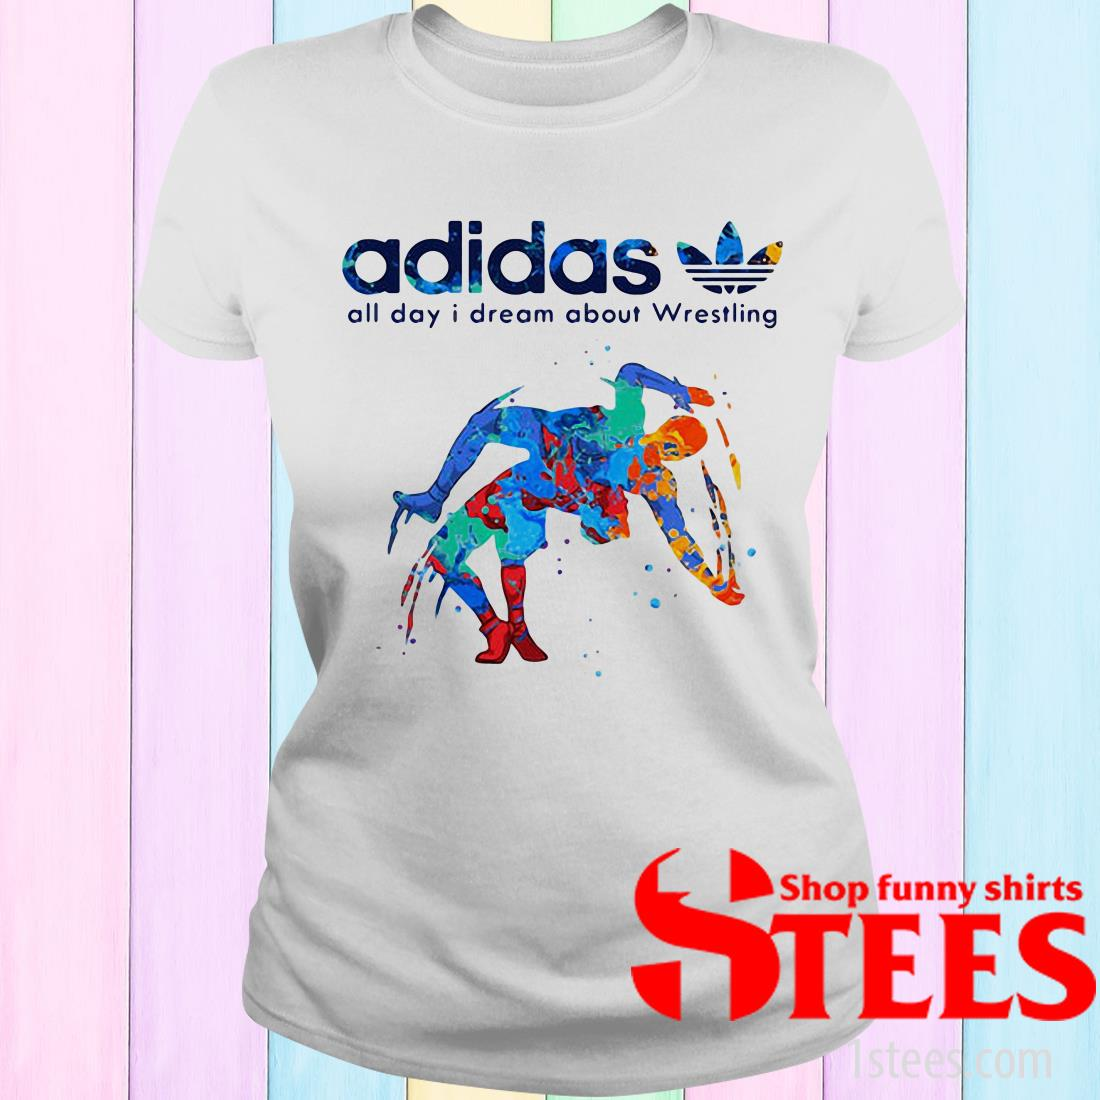 Adidas All Day I Dream About Wrestling Hot Women's T-Shirt